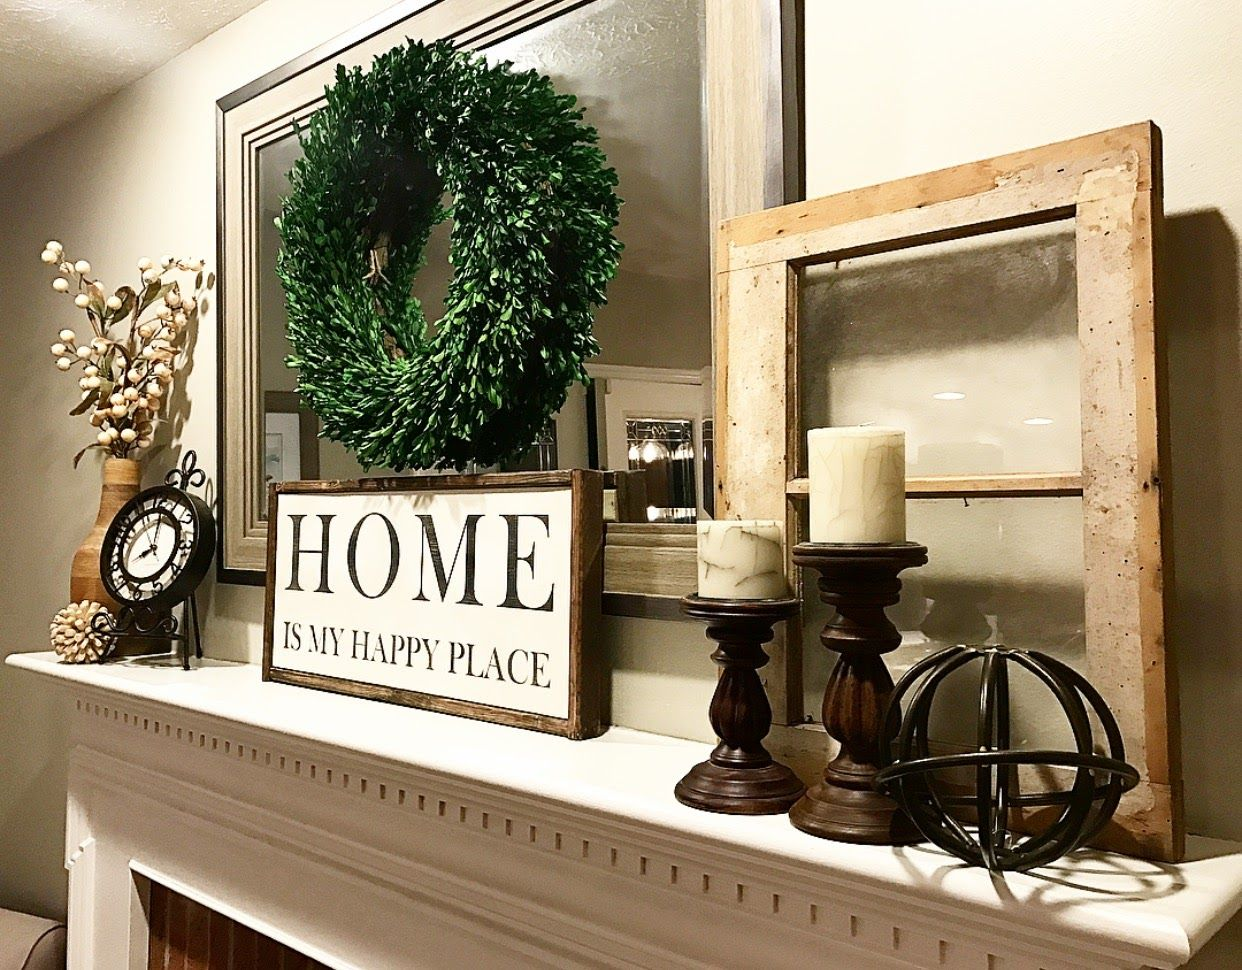 Mantle decor. Love mixing wood accents and dried greenery.